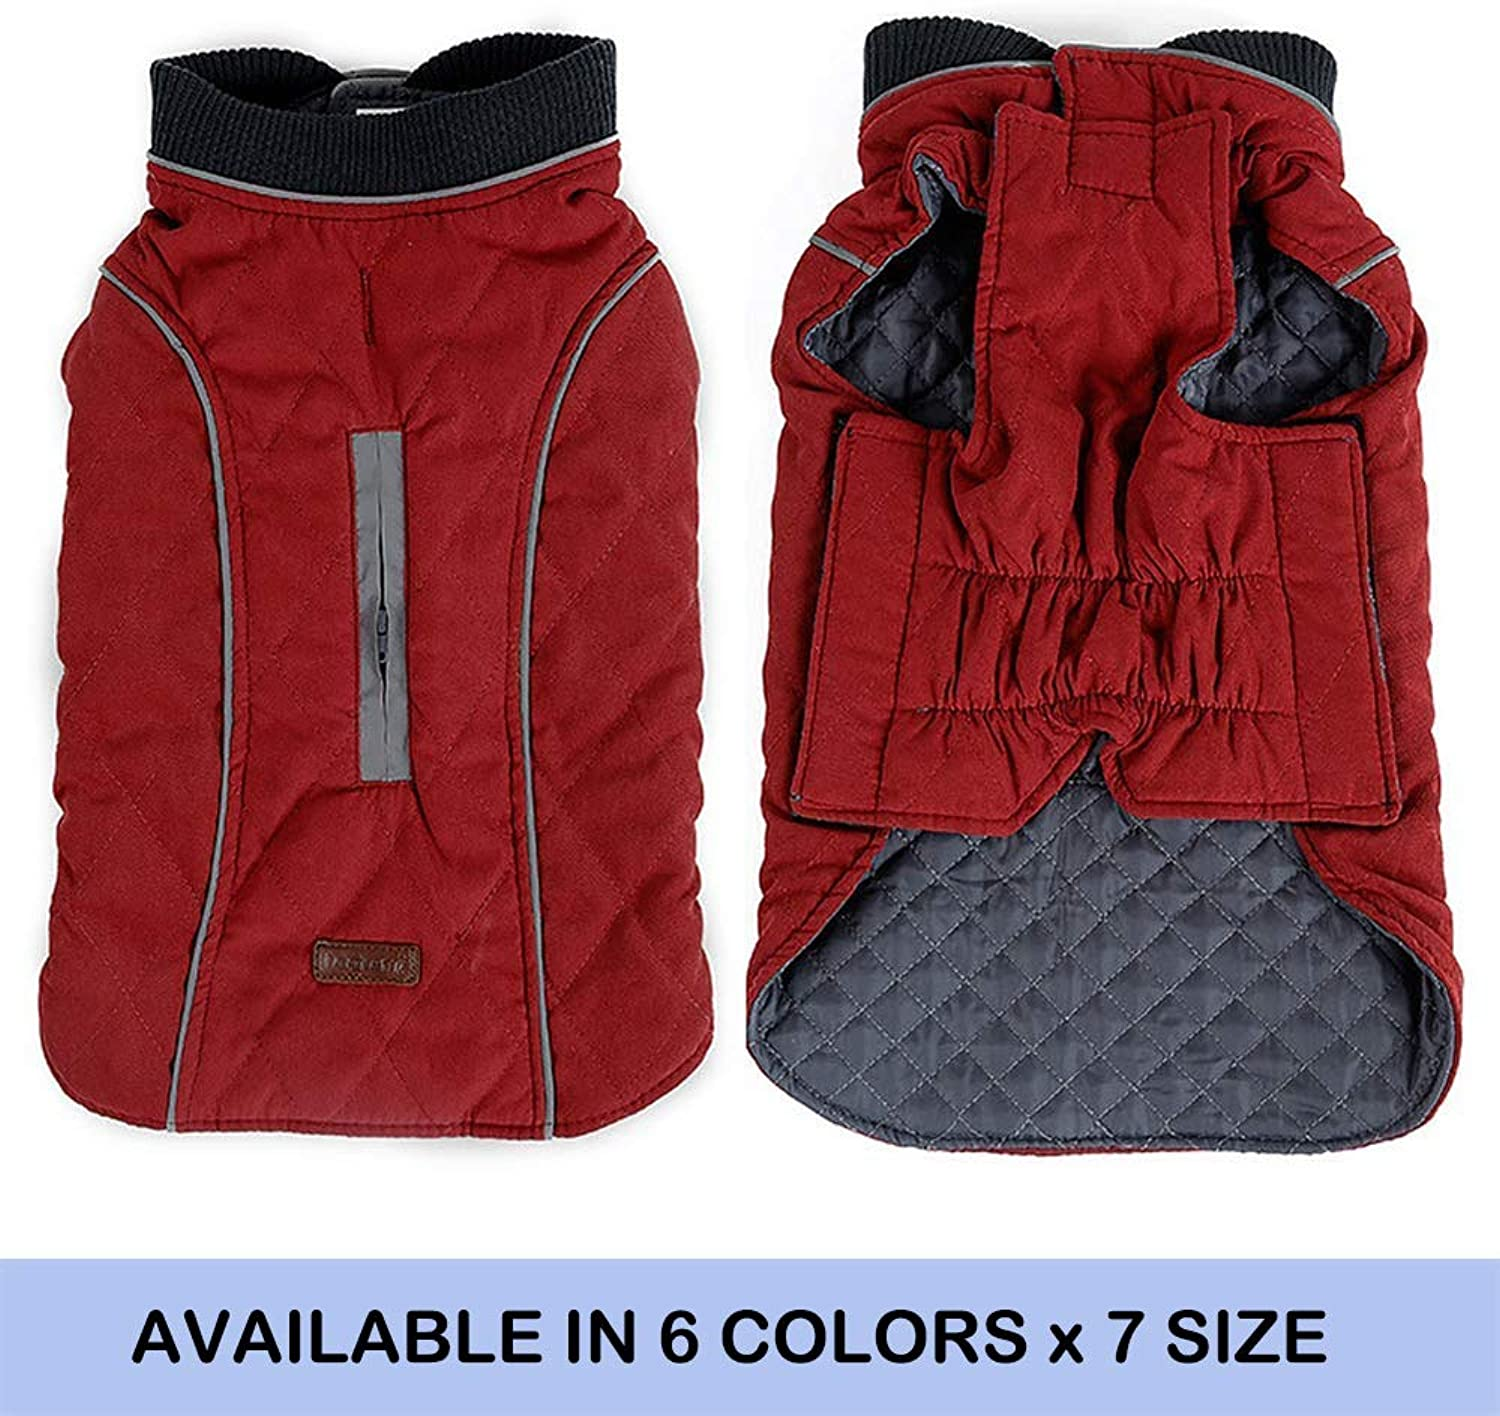 FORYY Reflective Dog Coats with Leash Harness Appendice Hole Winter Vest Jackets for Small Medium Large Dogs Windif Snow tuta da neve Pet Apparel Clothes Sweaters (Red,L)